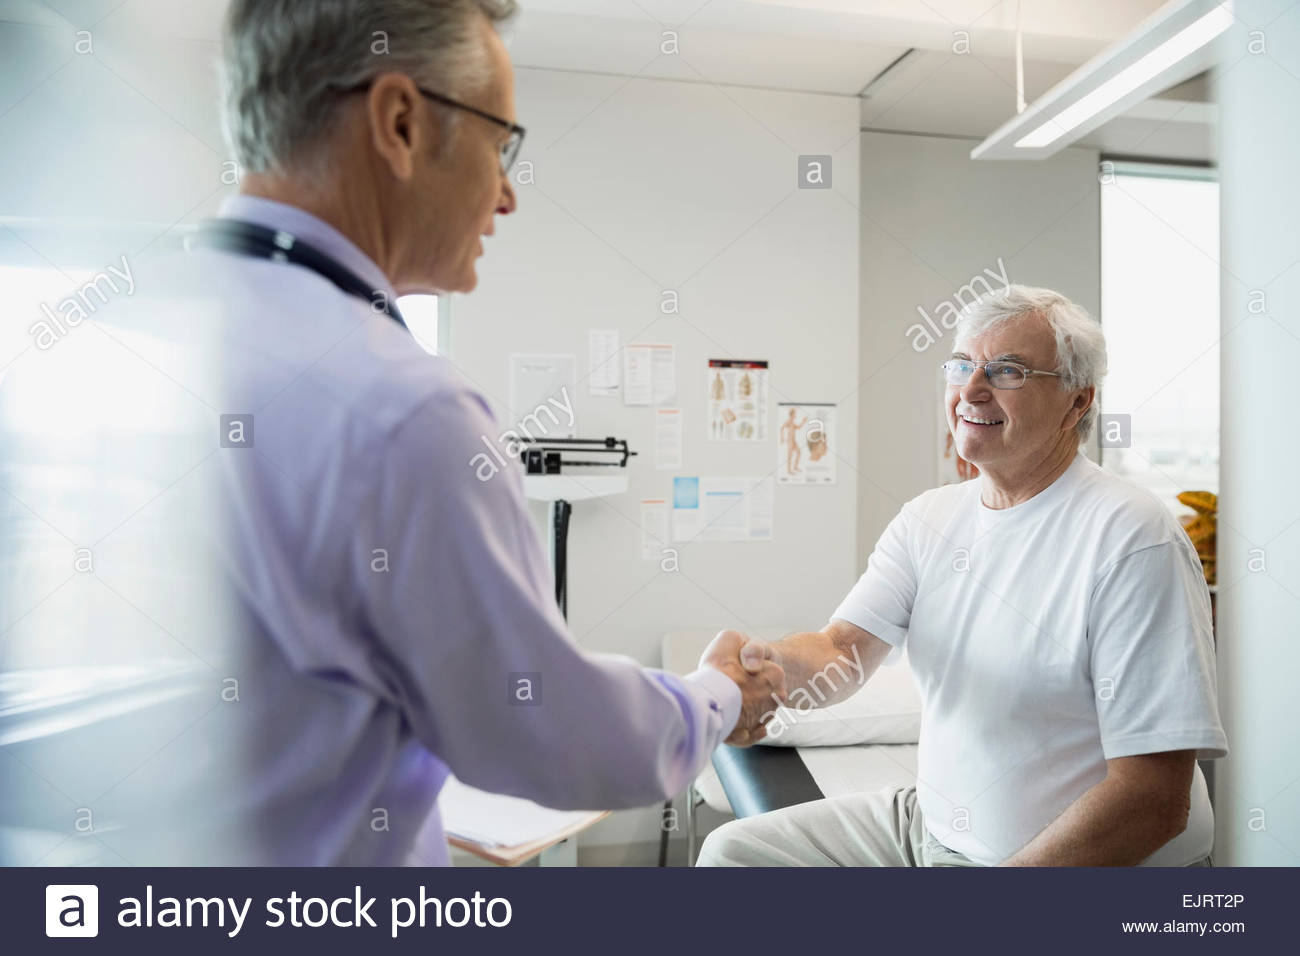 Doctor handshaking with senior man in examination room - Stock Image